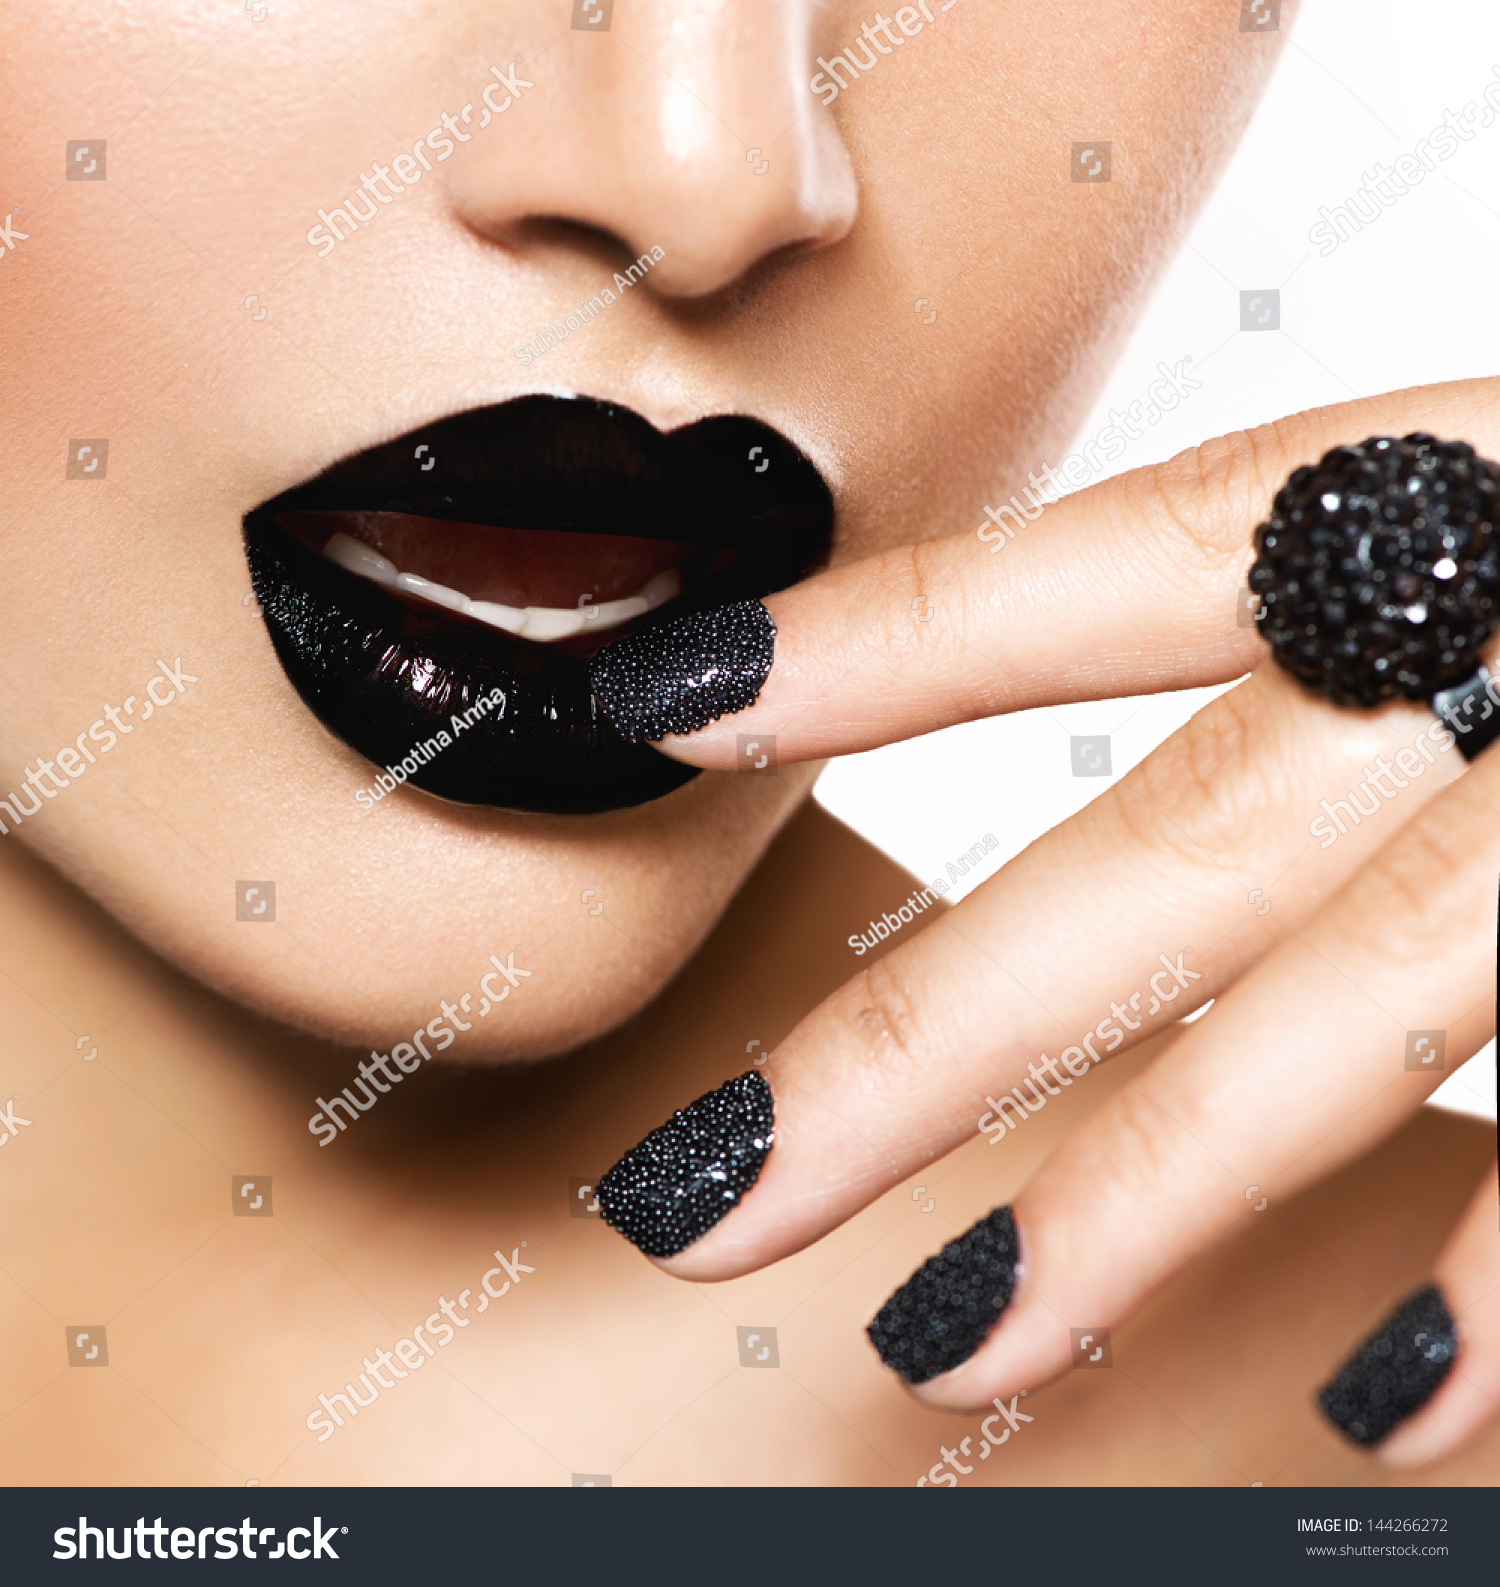 Trendy black caviar manicure black lips stock photo 144266272 trendy black caviar manicure and black lips fashion makeup and manicure nail art prinsesfo Image collections